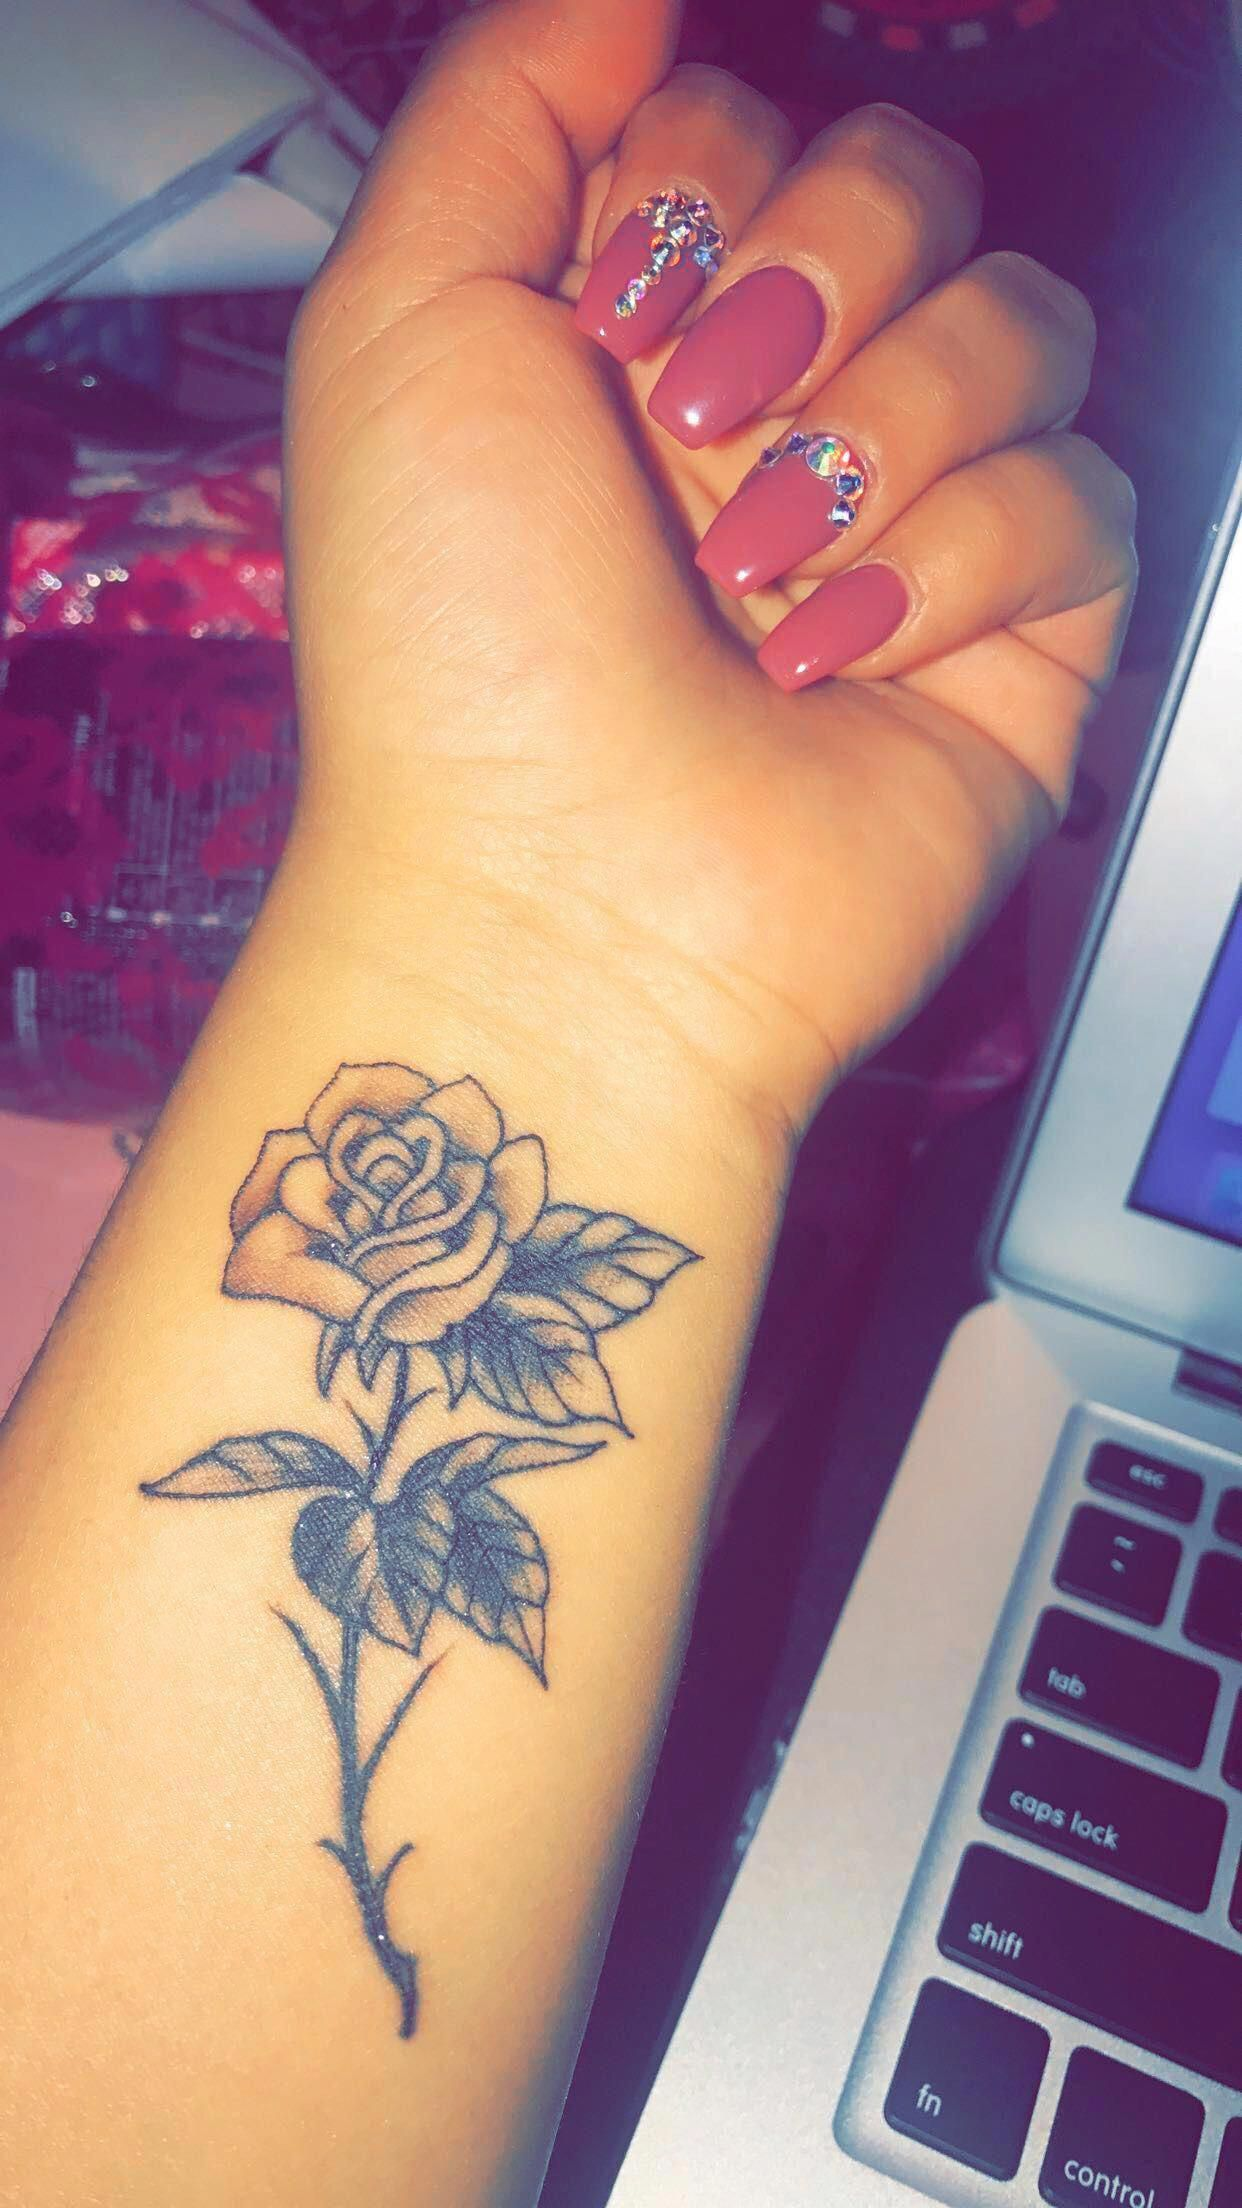 Flower Tattoo For Your Wrist Rose Tattoos On Wrist Flower Wrist Tattoos Tattoos